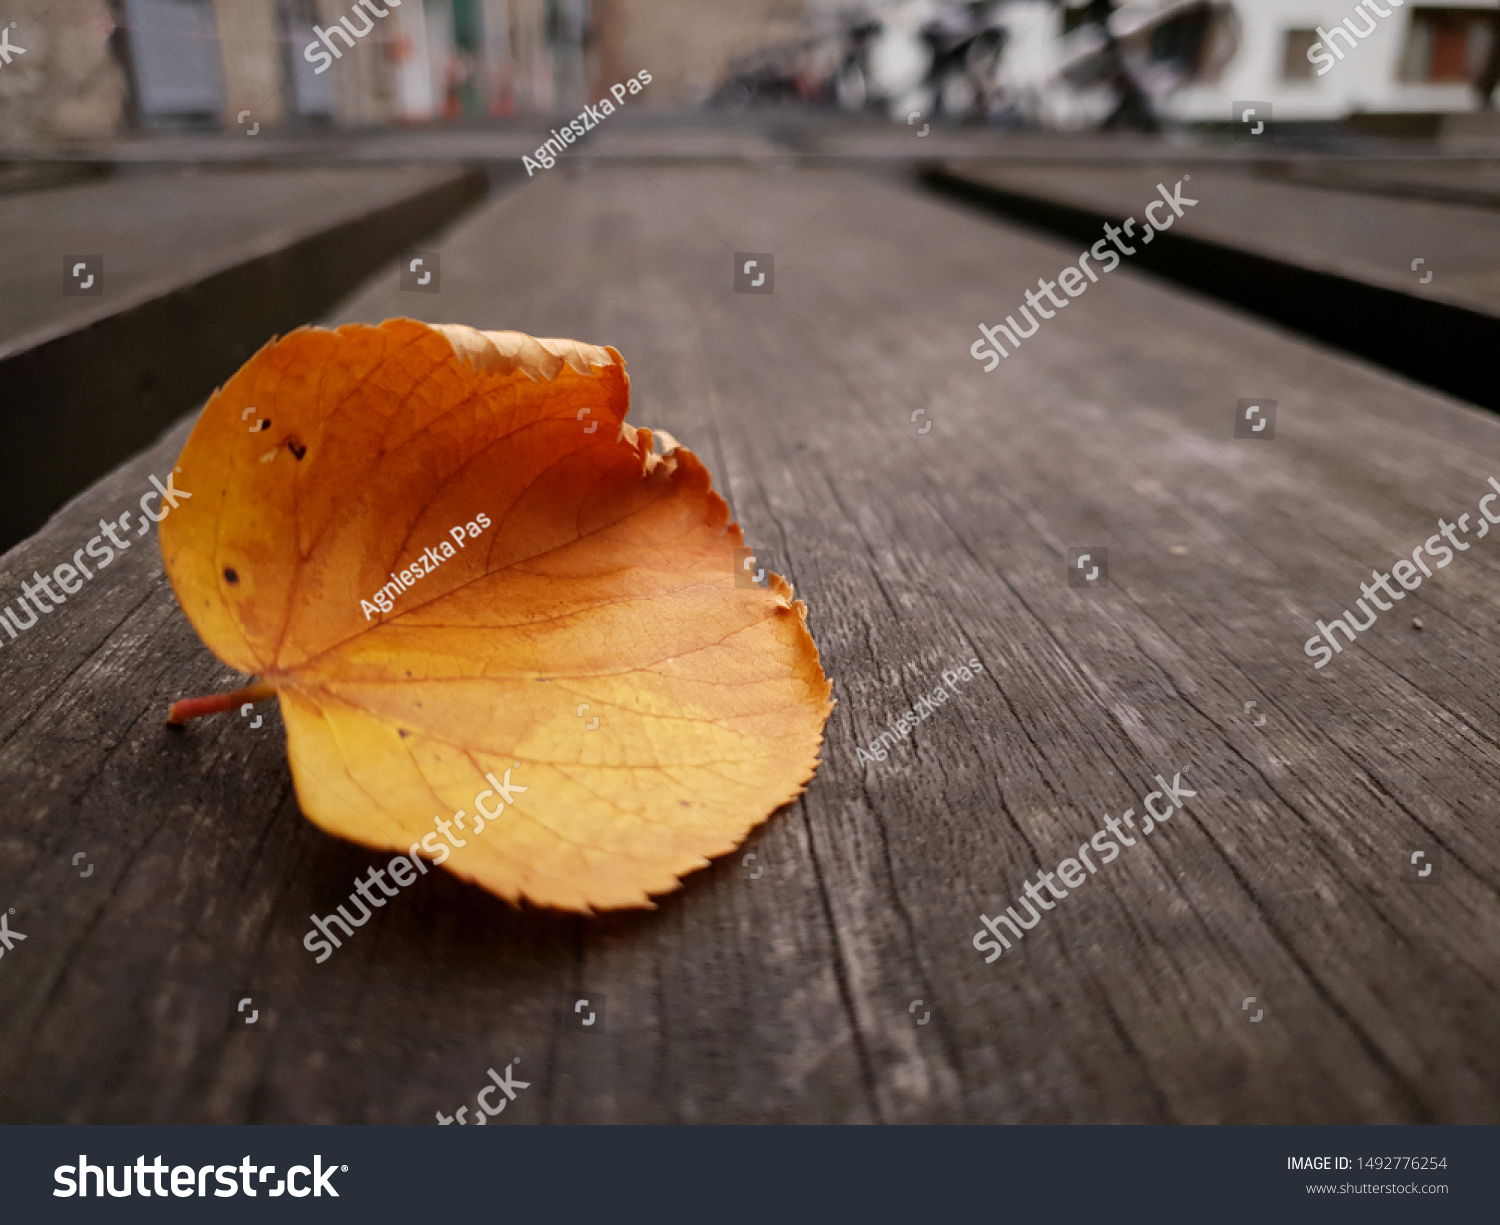 A close-up of orange dry leaf on wooden surface with a blur background